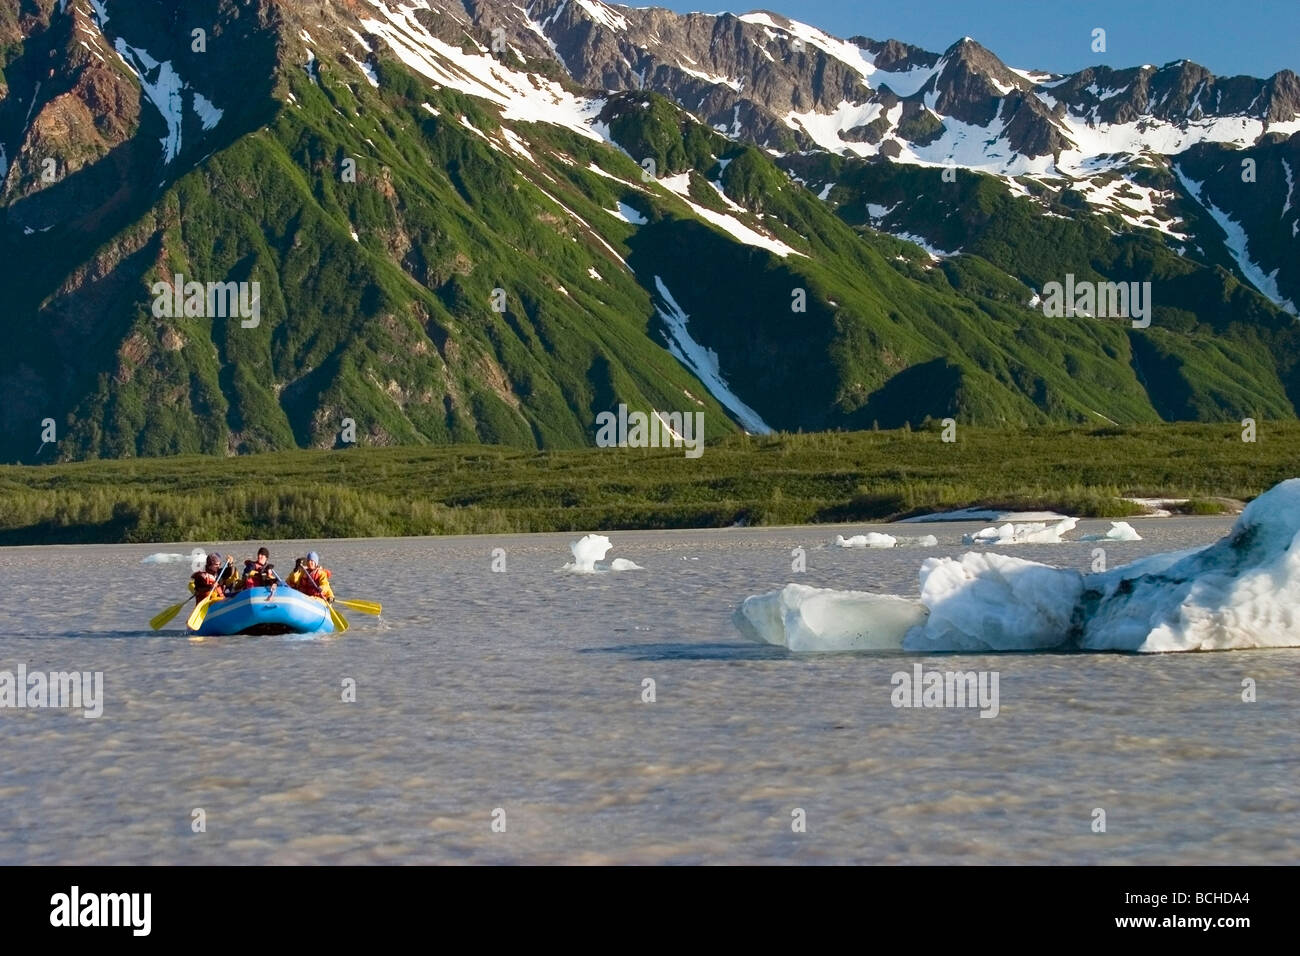 Rafting group paddles across Miles Lake to finish a 250-mile expedtion in the Copper River drainage Southcentral - Stock Image